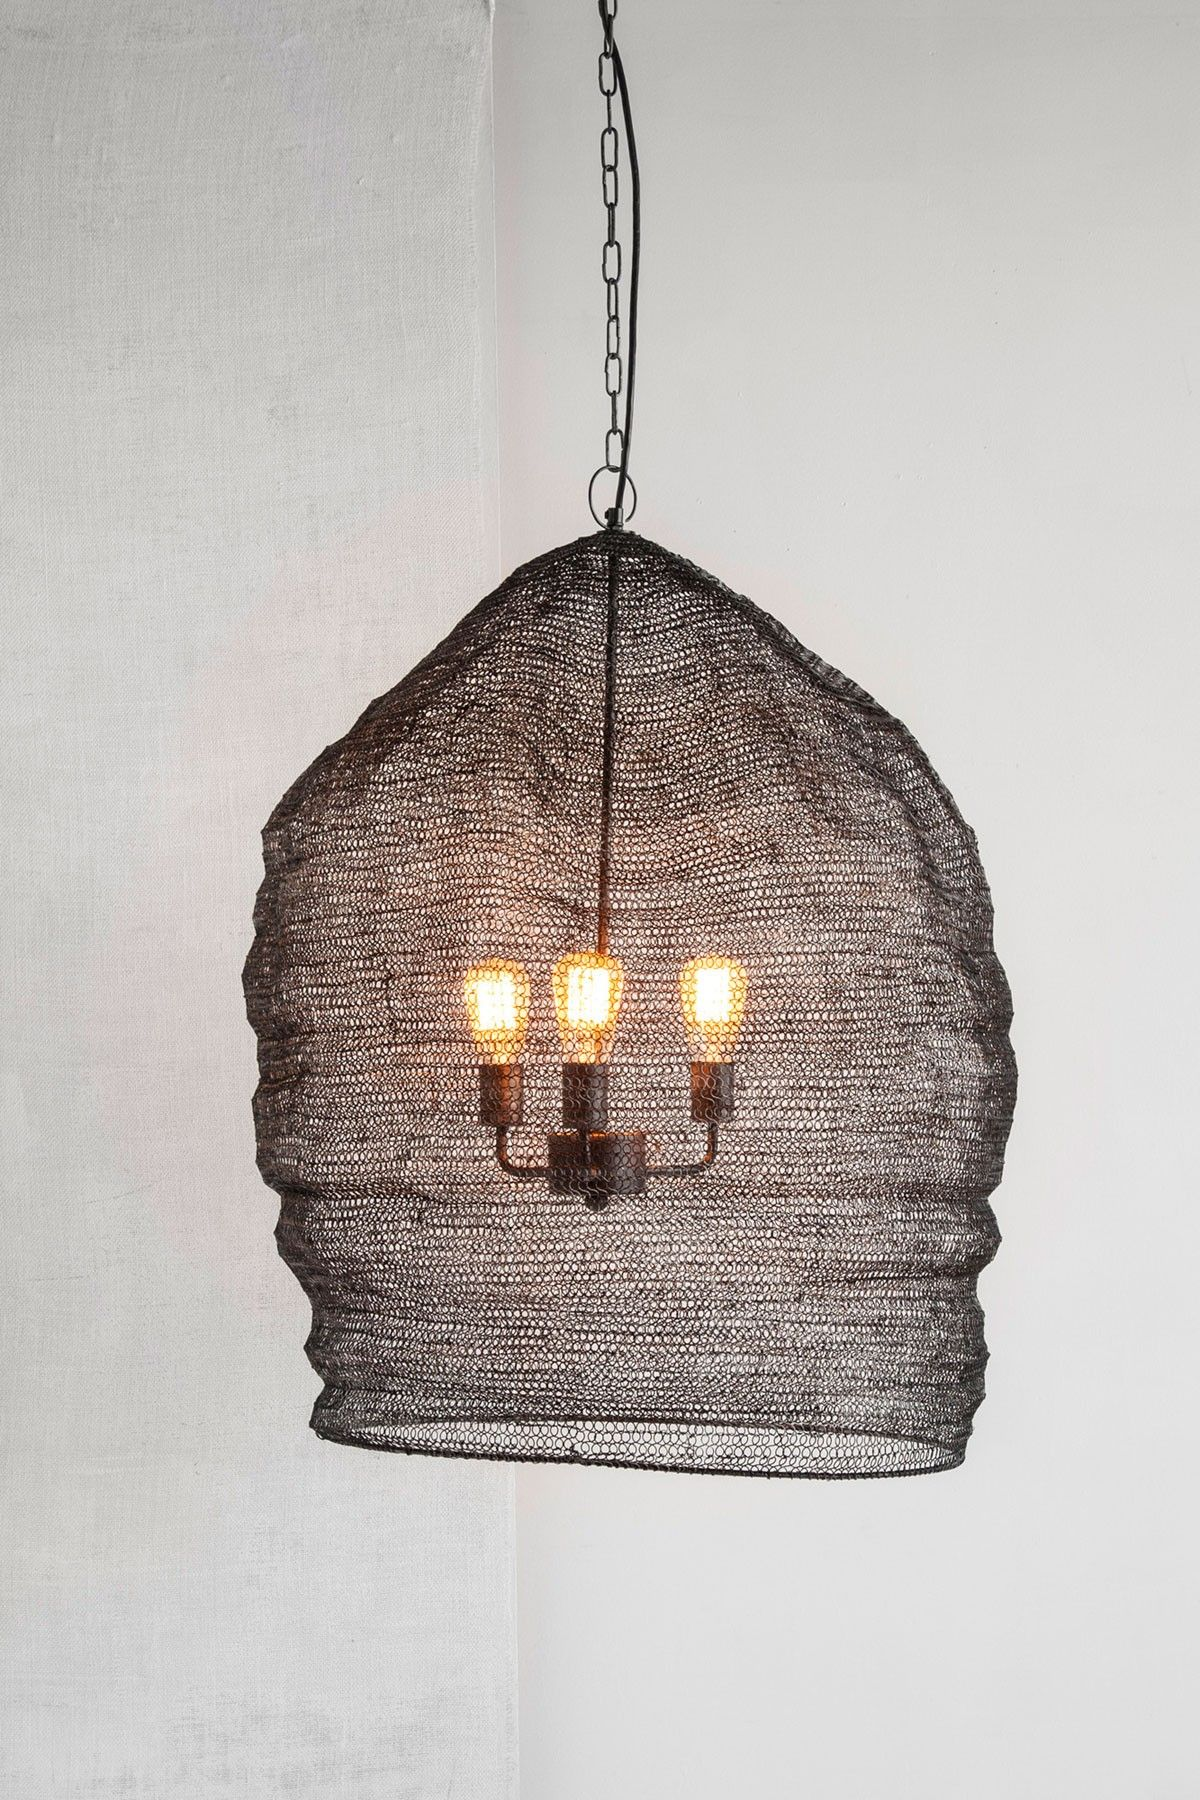 Mesh Lamp pergola lighting Pinterest